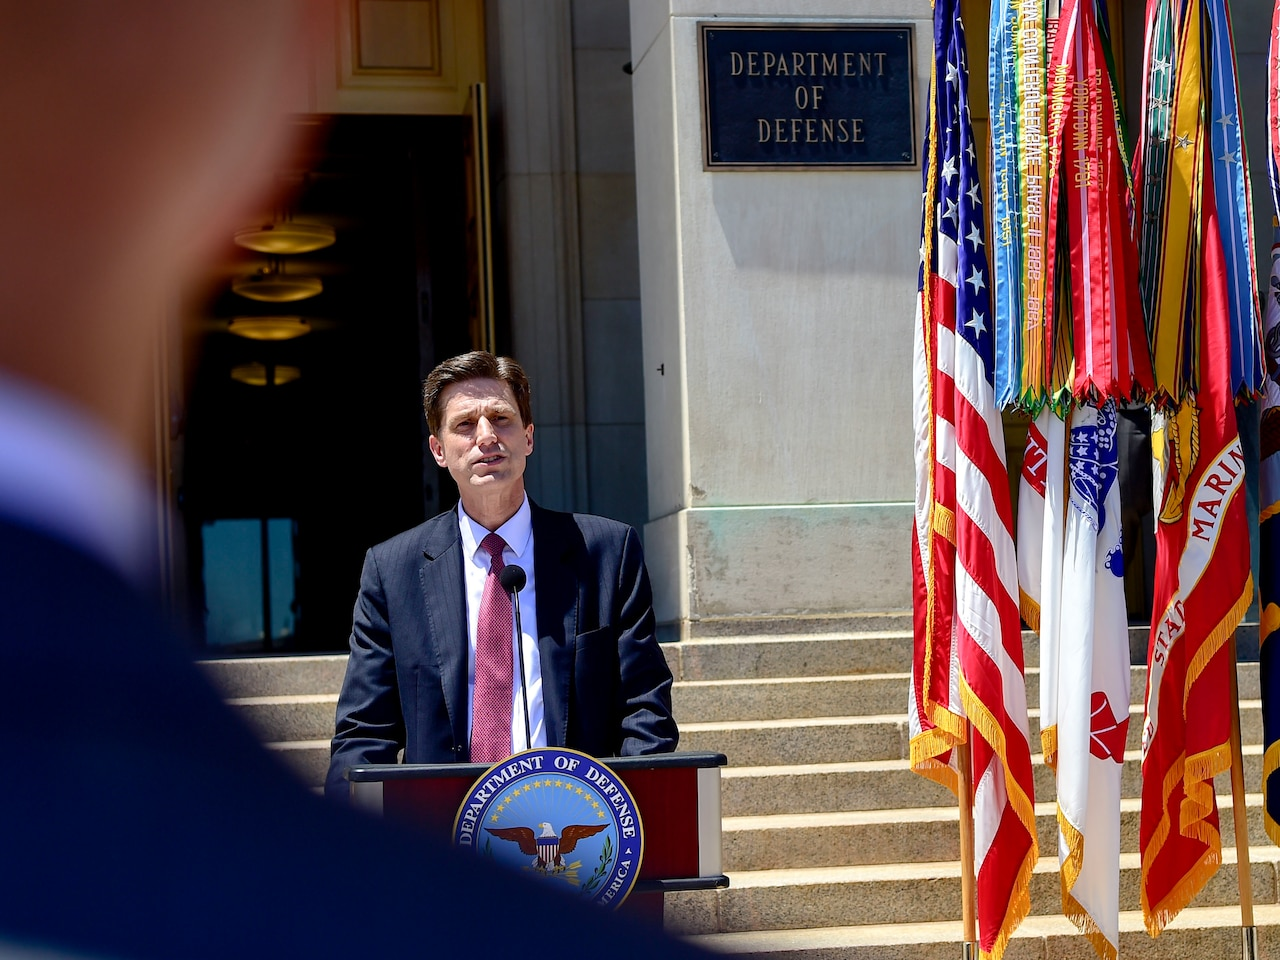 A man speaks into a microphone on a podium that has a Defense Department seal. The U.S. flag is to his right.